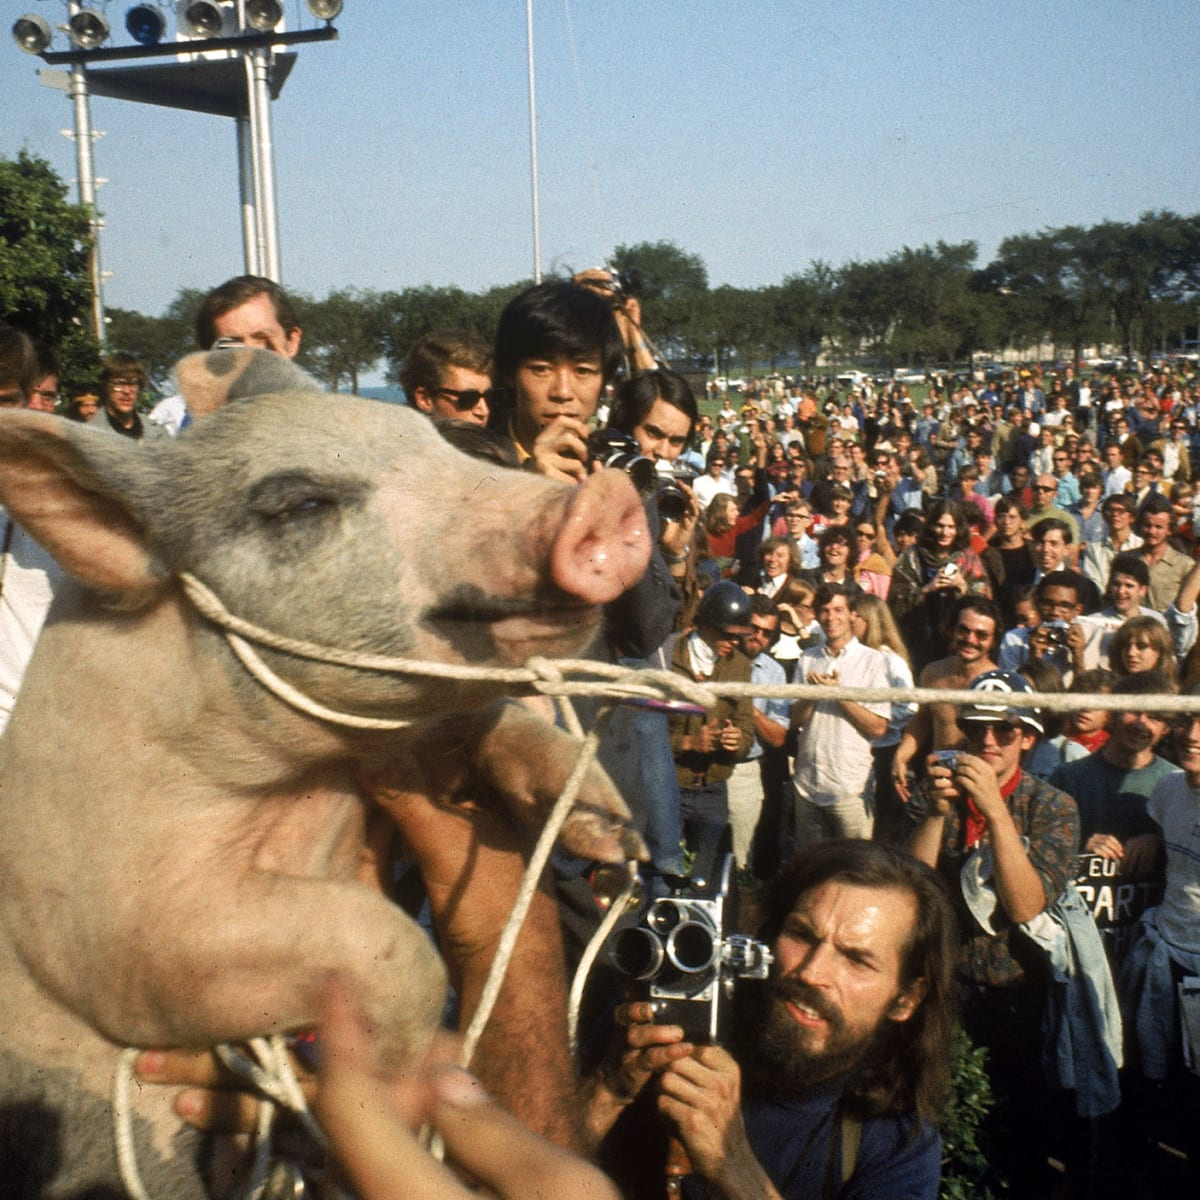 At the 1968 DNC, Yippies Found Their Voice - HISTORY